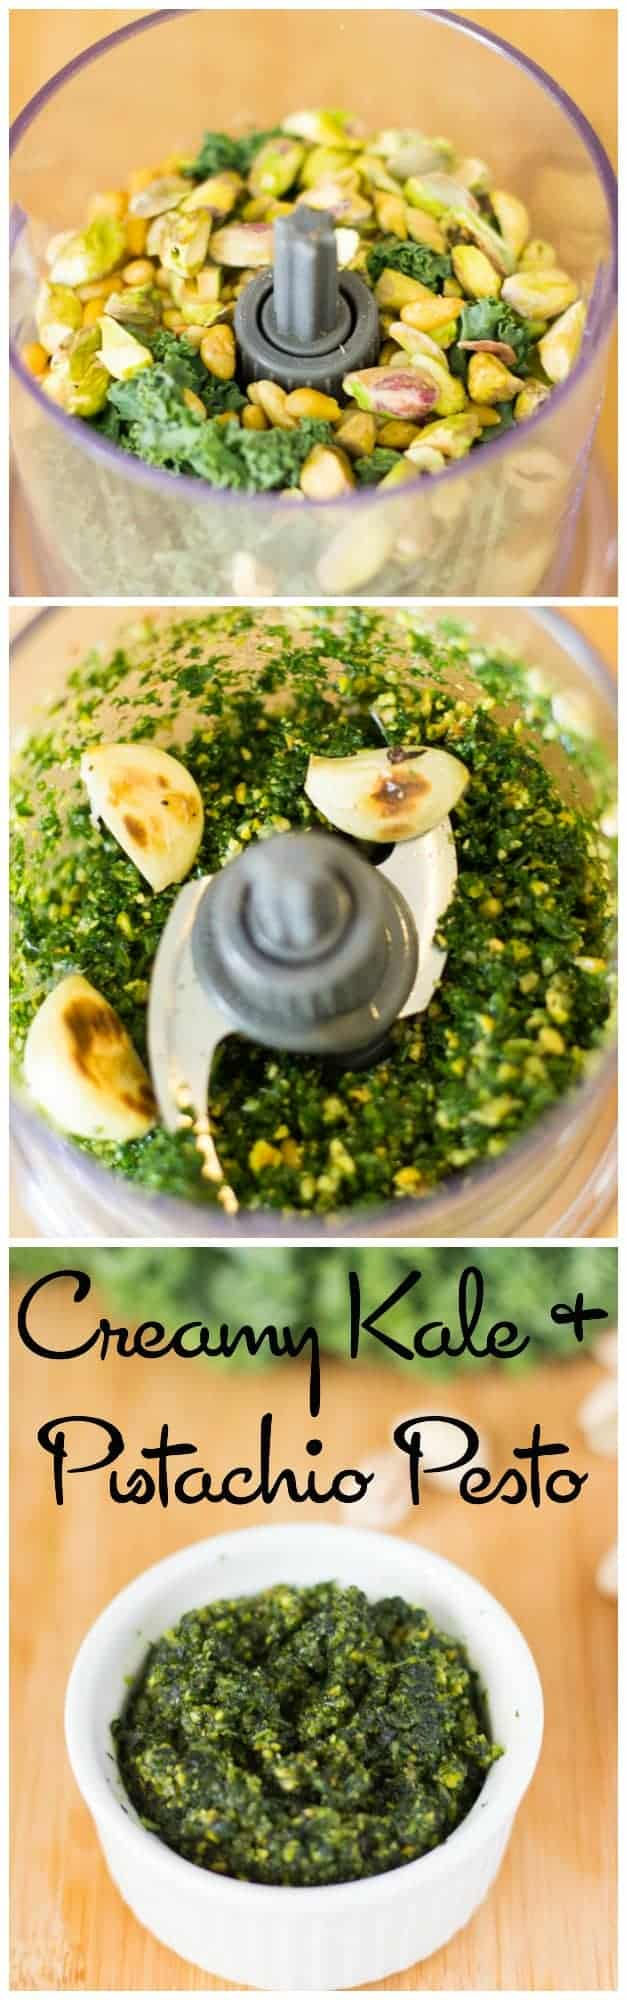 Kale and Pistachio Pesto is the best pesto I have ever had! It's so creamy and flavourful, and perfect for a dip, your pasta or on anything! #pesto #vegetarian #vegan #kale #pistachios